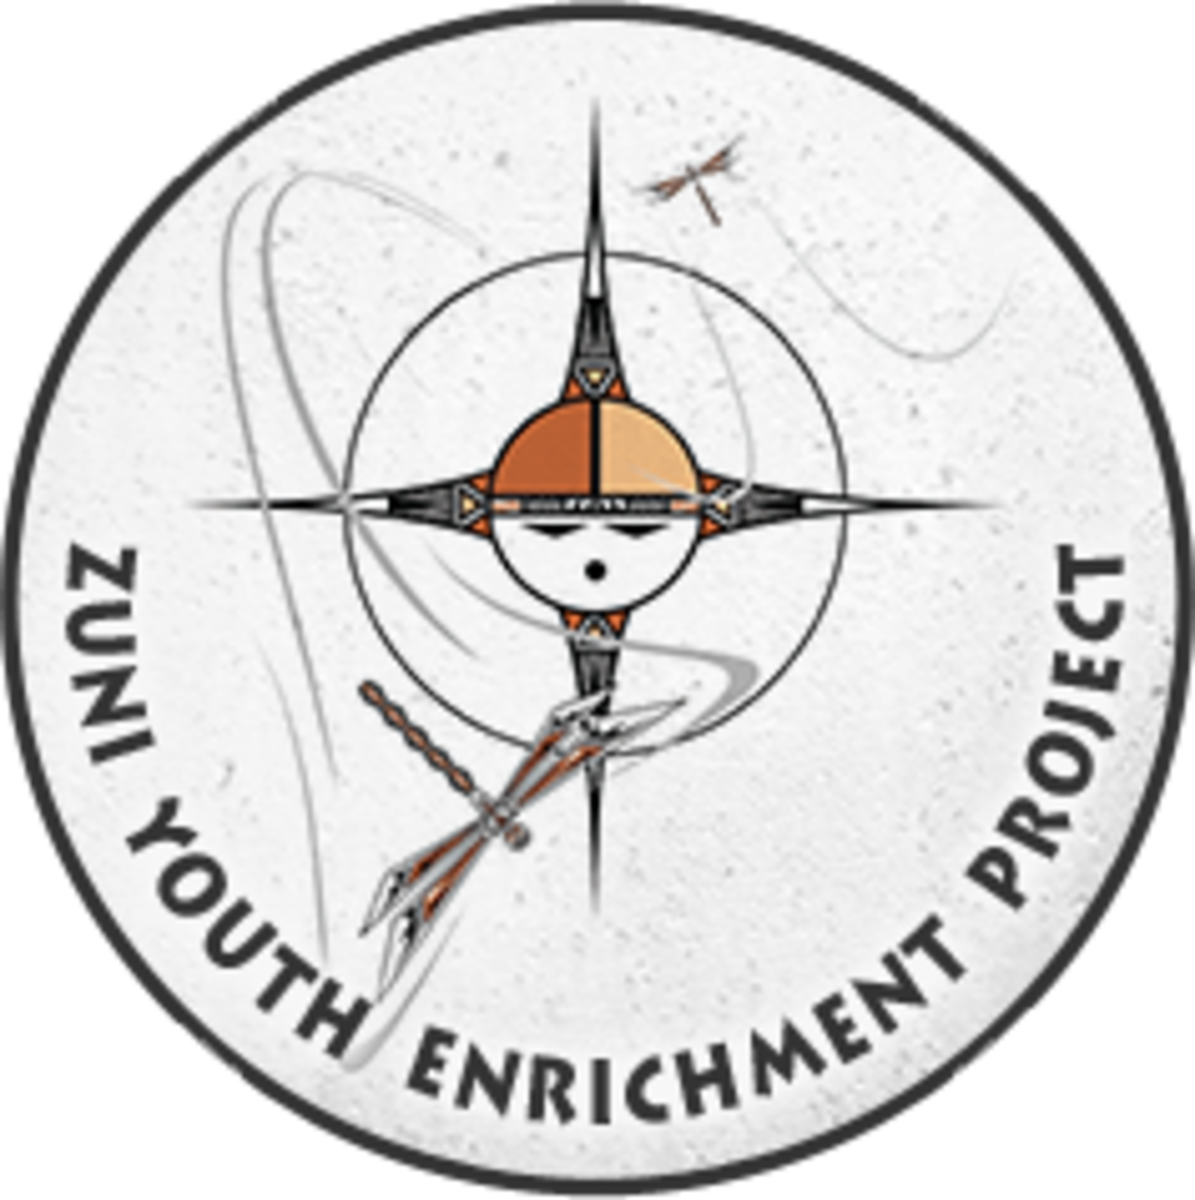 Zuni Youth Enrichment Project - logo